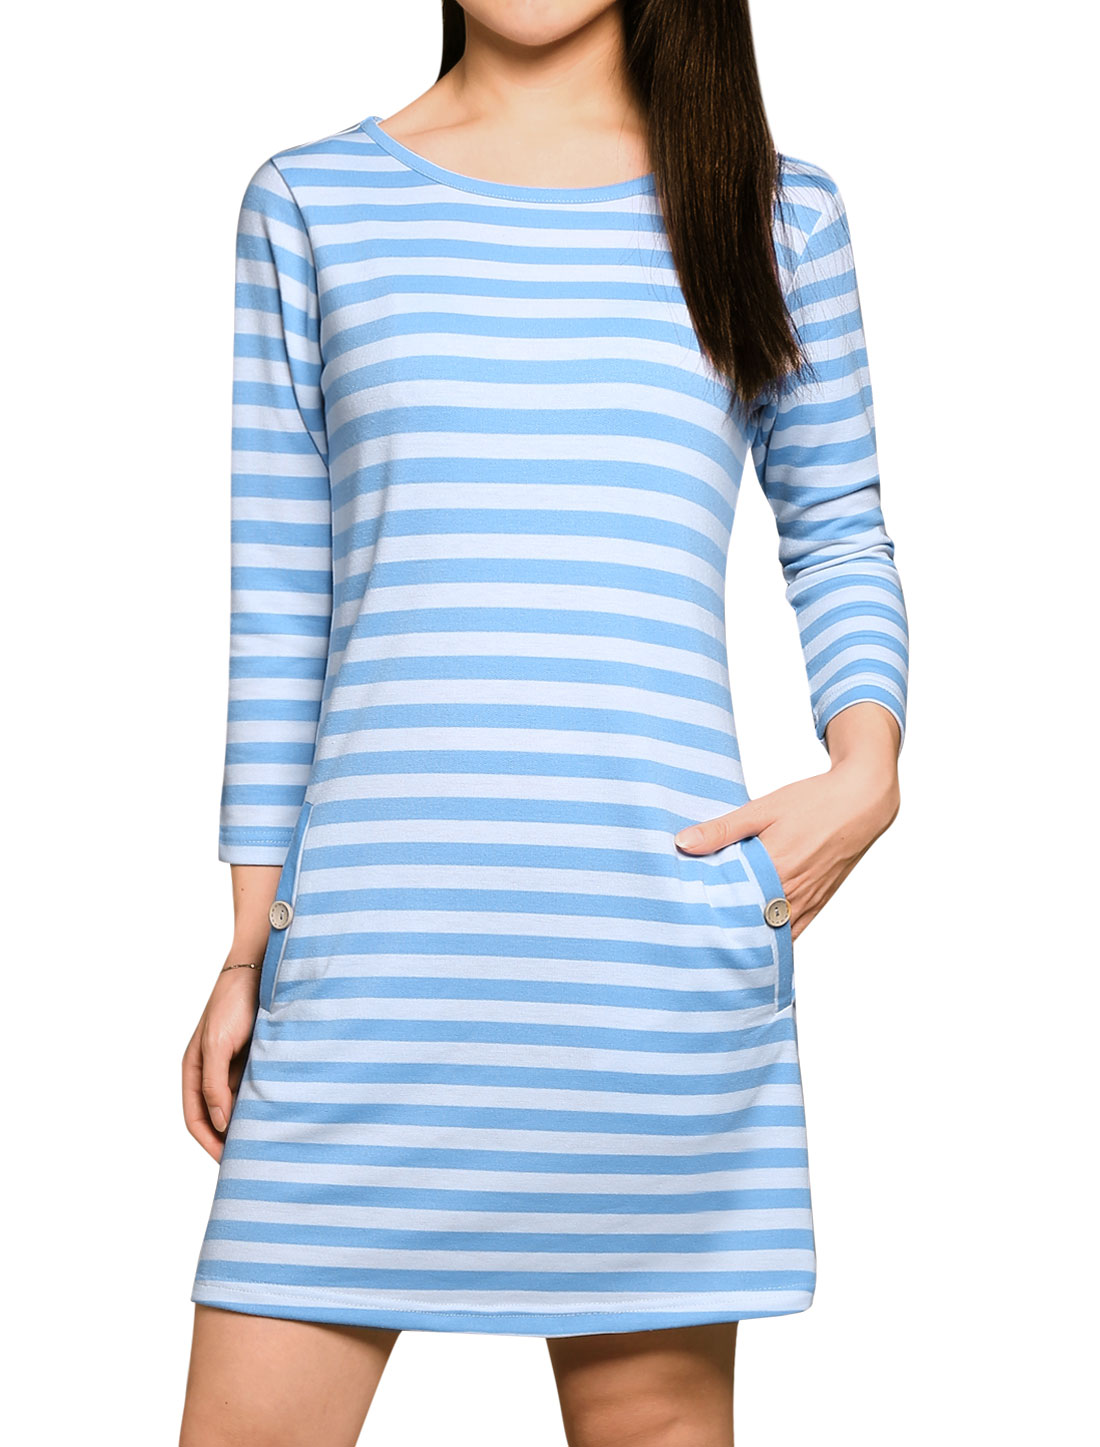 Woman Bar Striped 3/4 Sleeves Scoop Neck Unlined Mini Dress Blue S